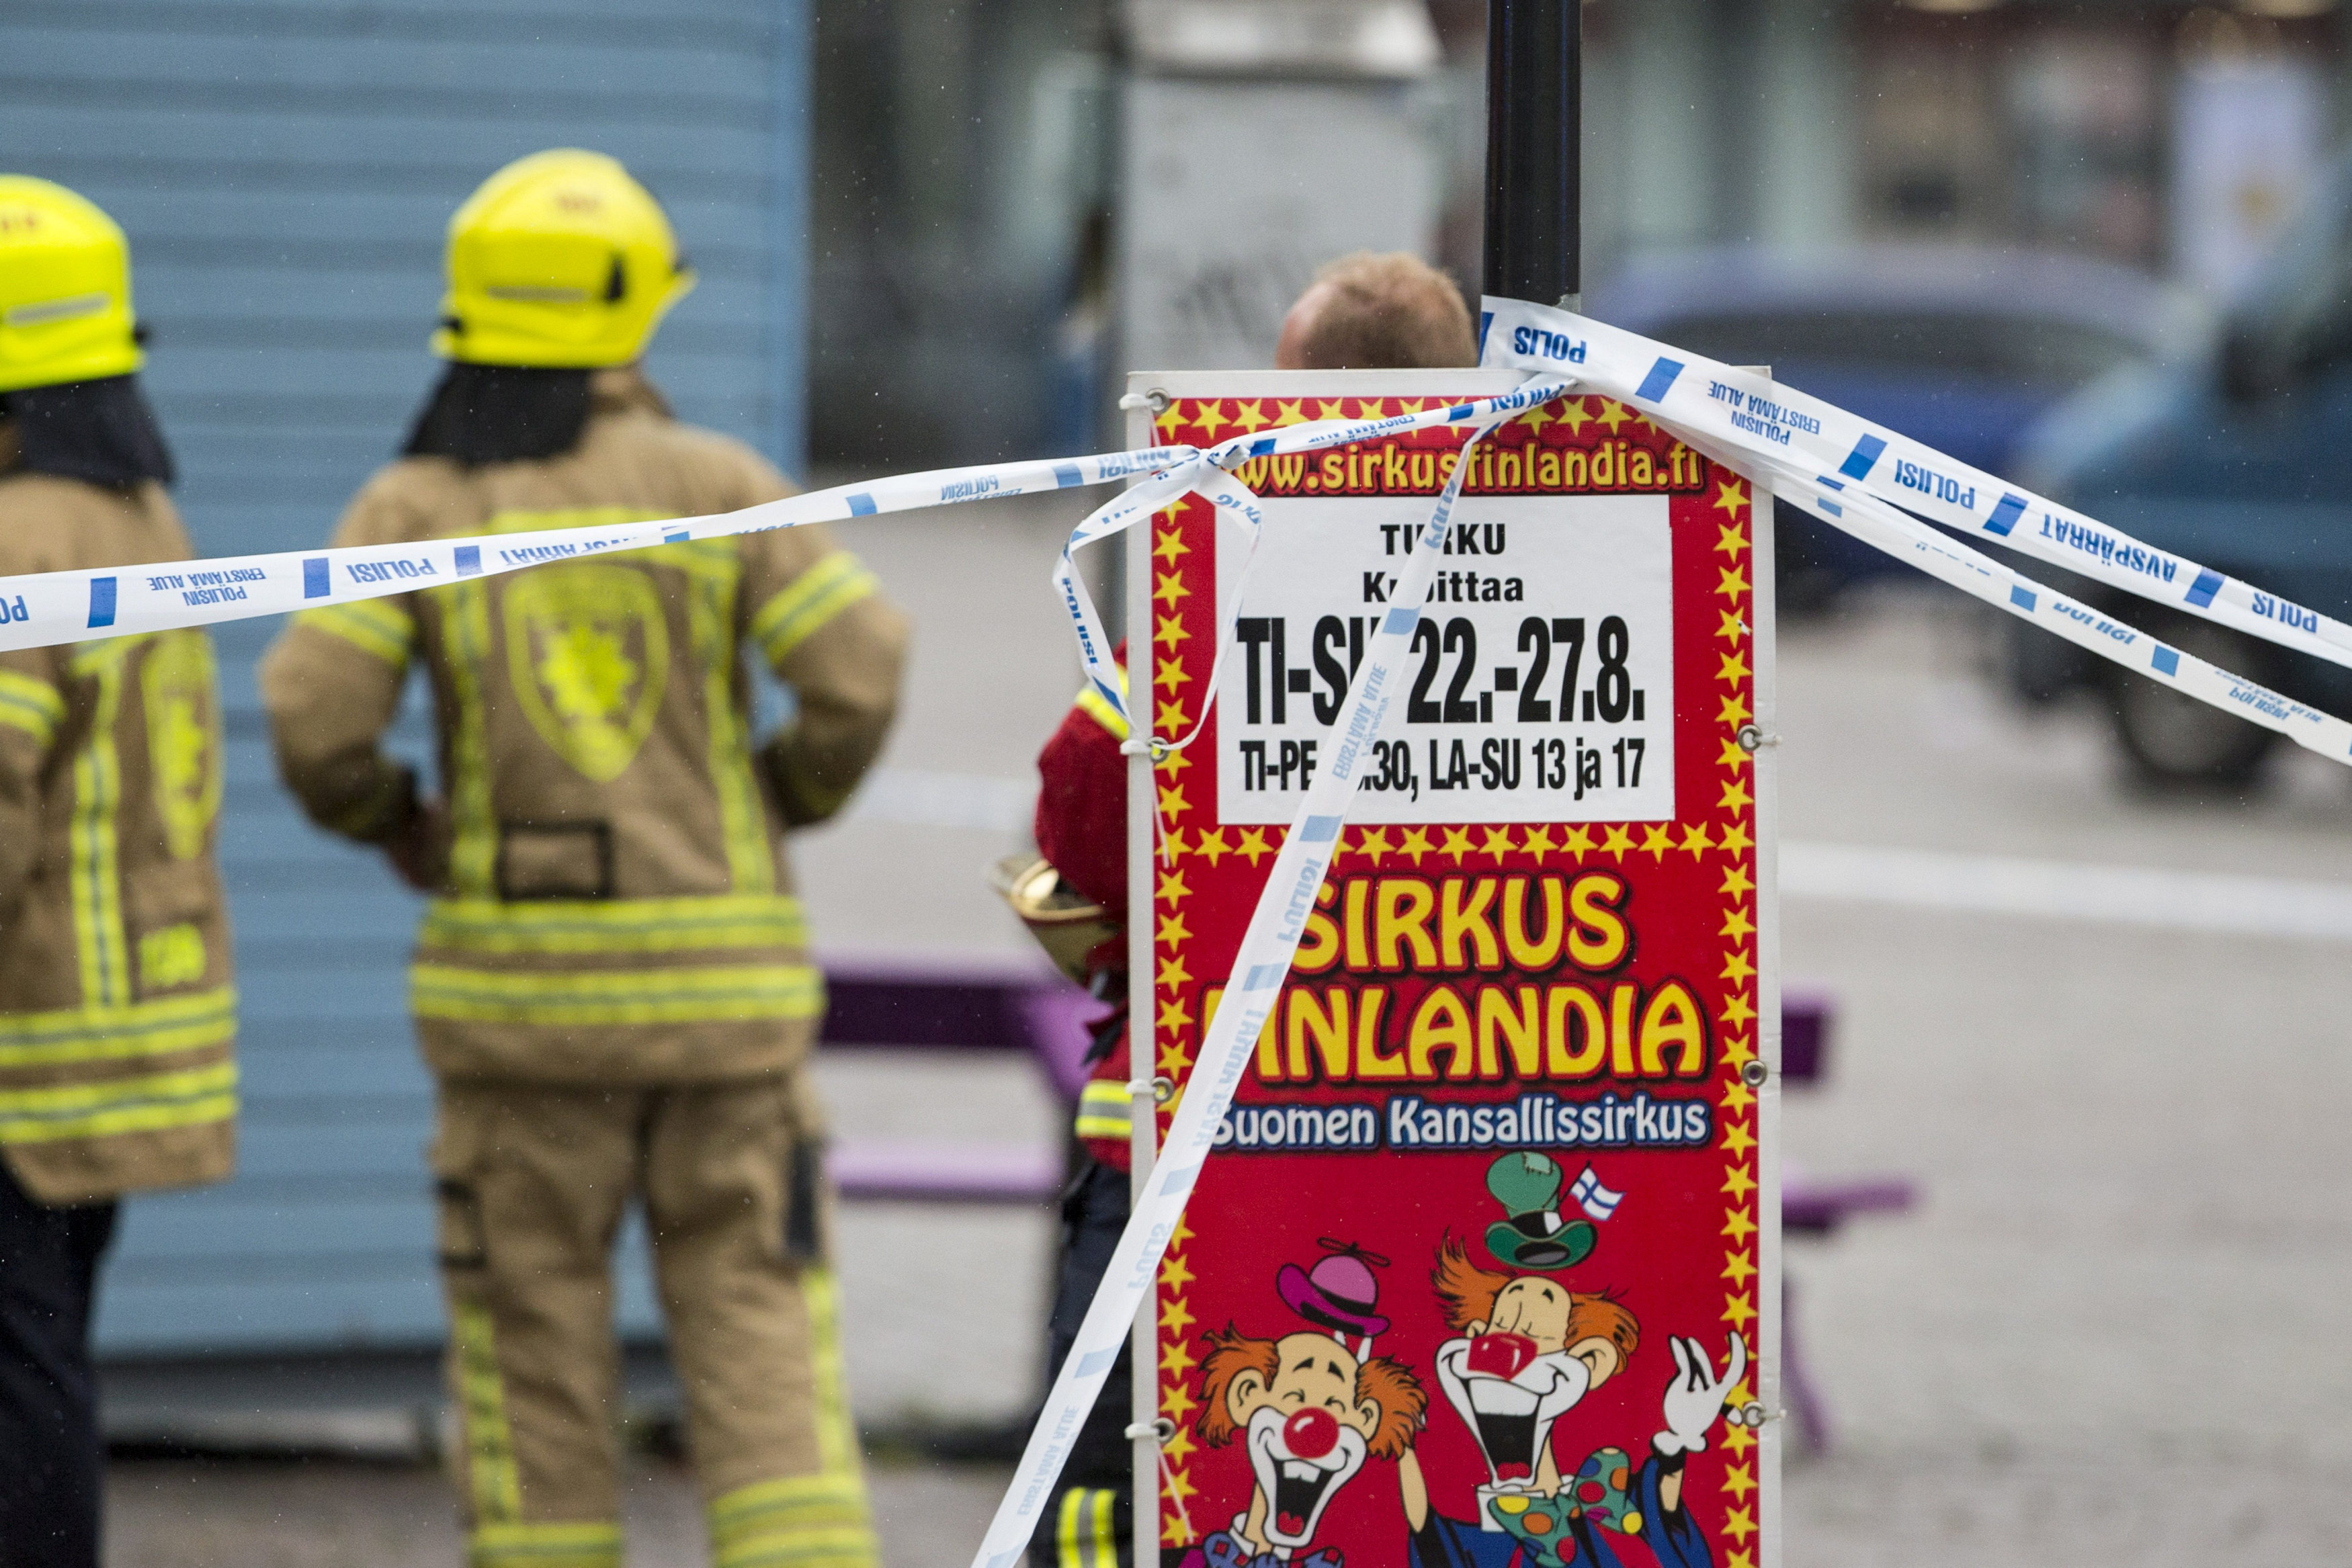 Rescue personnel cordon the place where several people were stabbed, at Turku Market Square, Finland August 18, 2017.  LEHTIKUVA/Roni Lehti via REUTERS